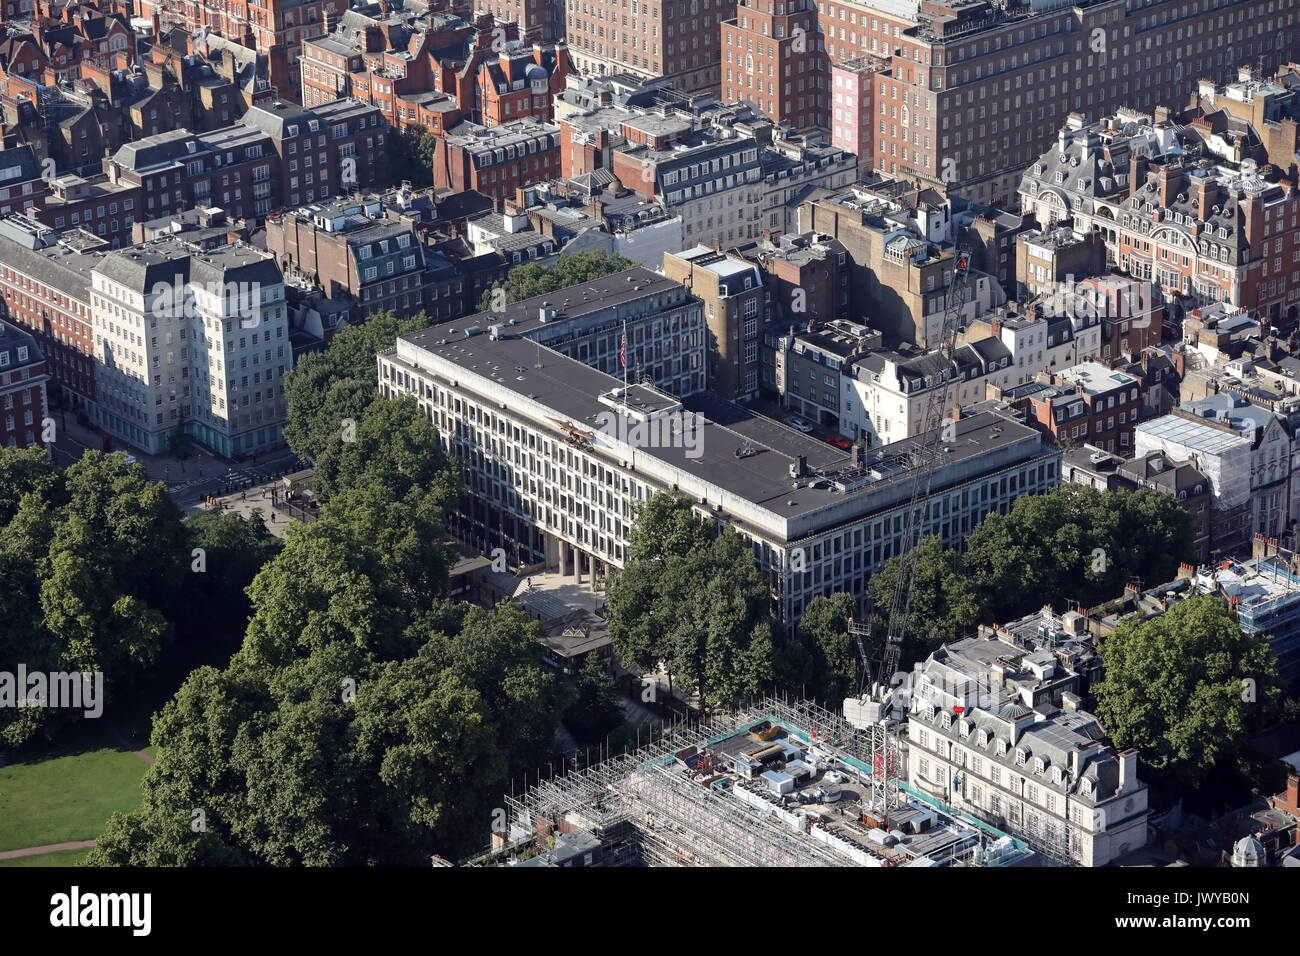 aerial view of the U.S. Embassy in Grosvenor Square, London, UK - Stock Image